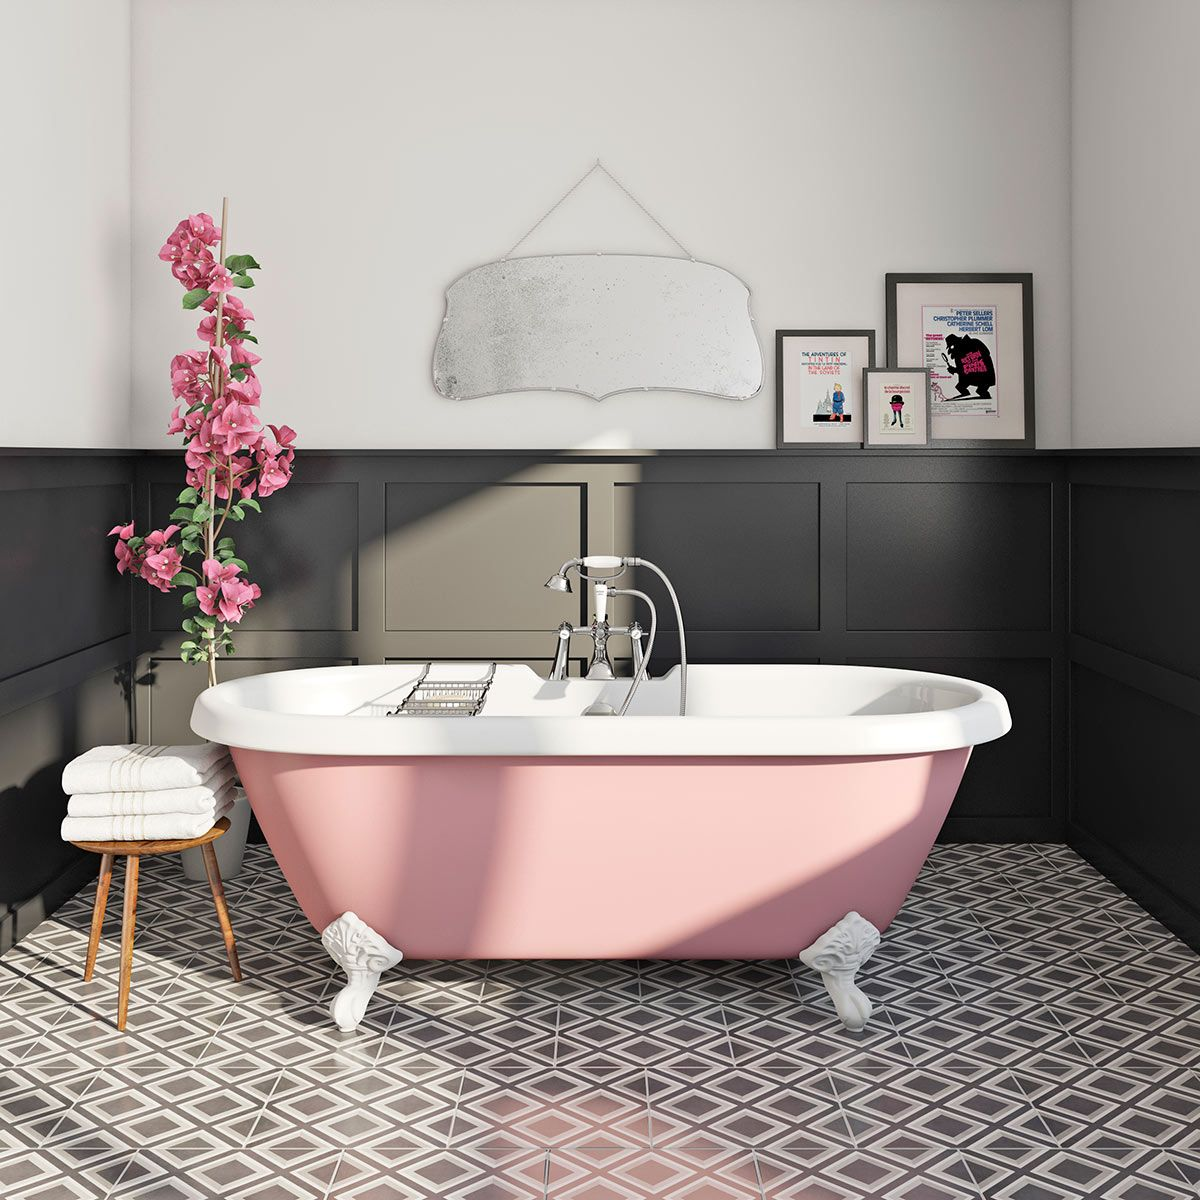 In the bathroom while taking a shower or a well deserved bubble bath - The Bath Co Victoria Rose Coloured Bath With Hampshire Shower Bath Mixer Tap